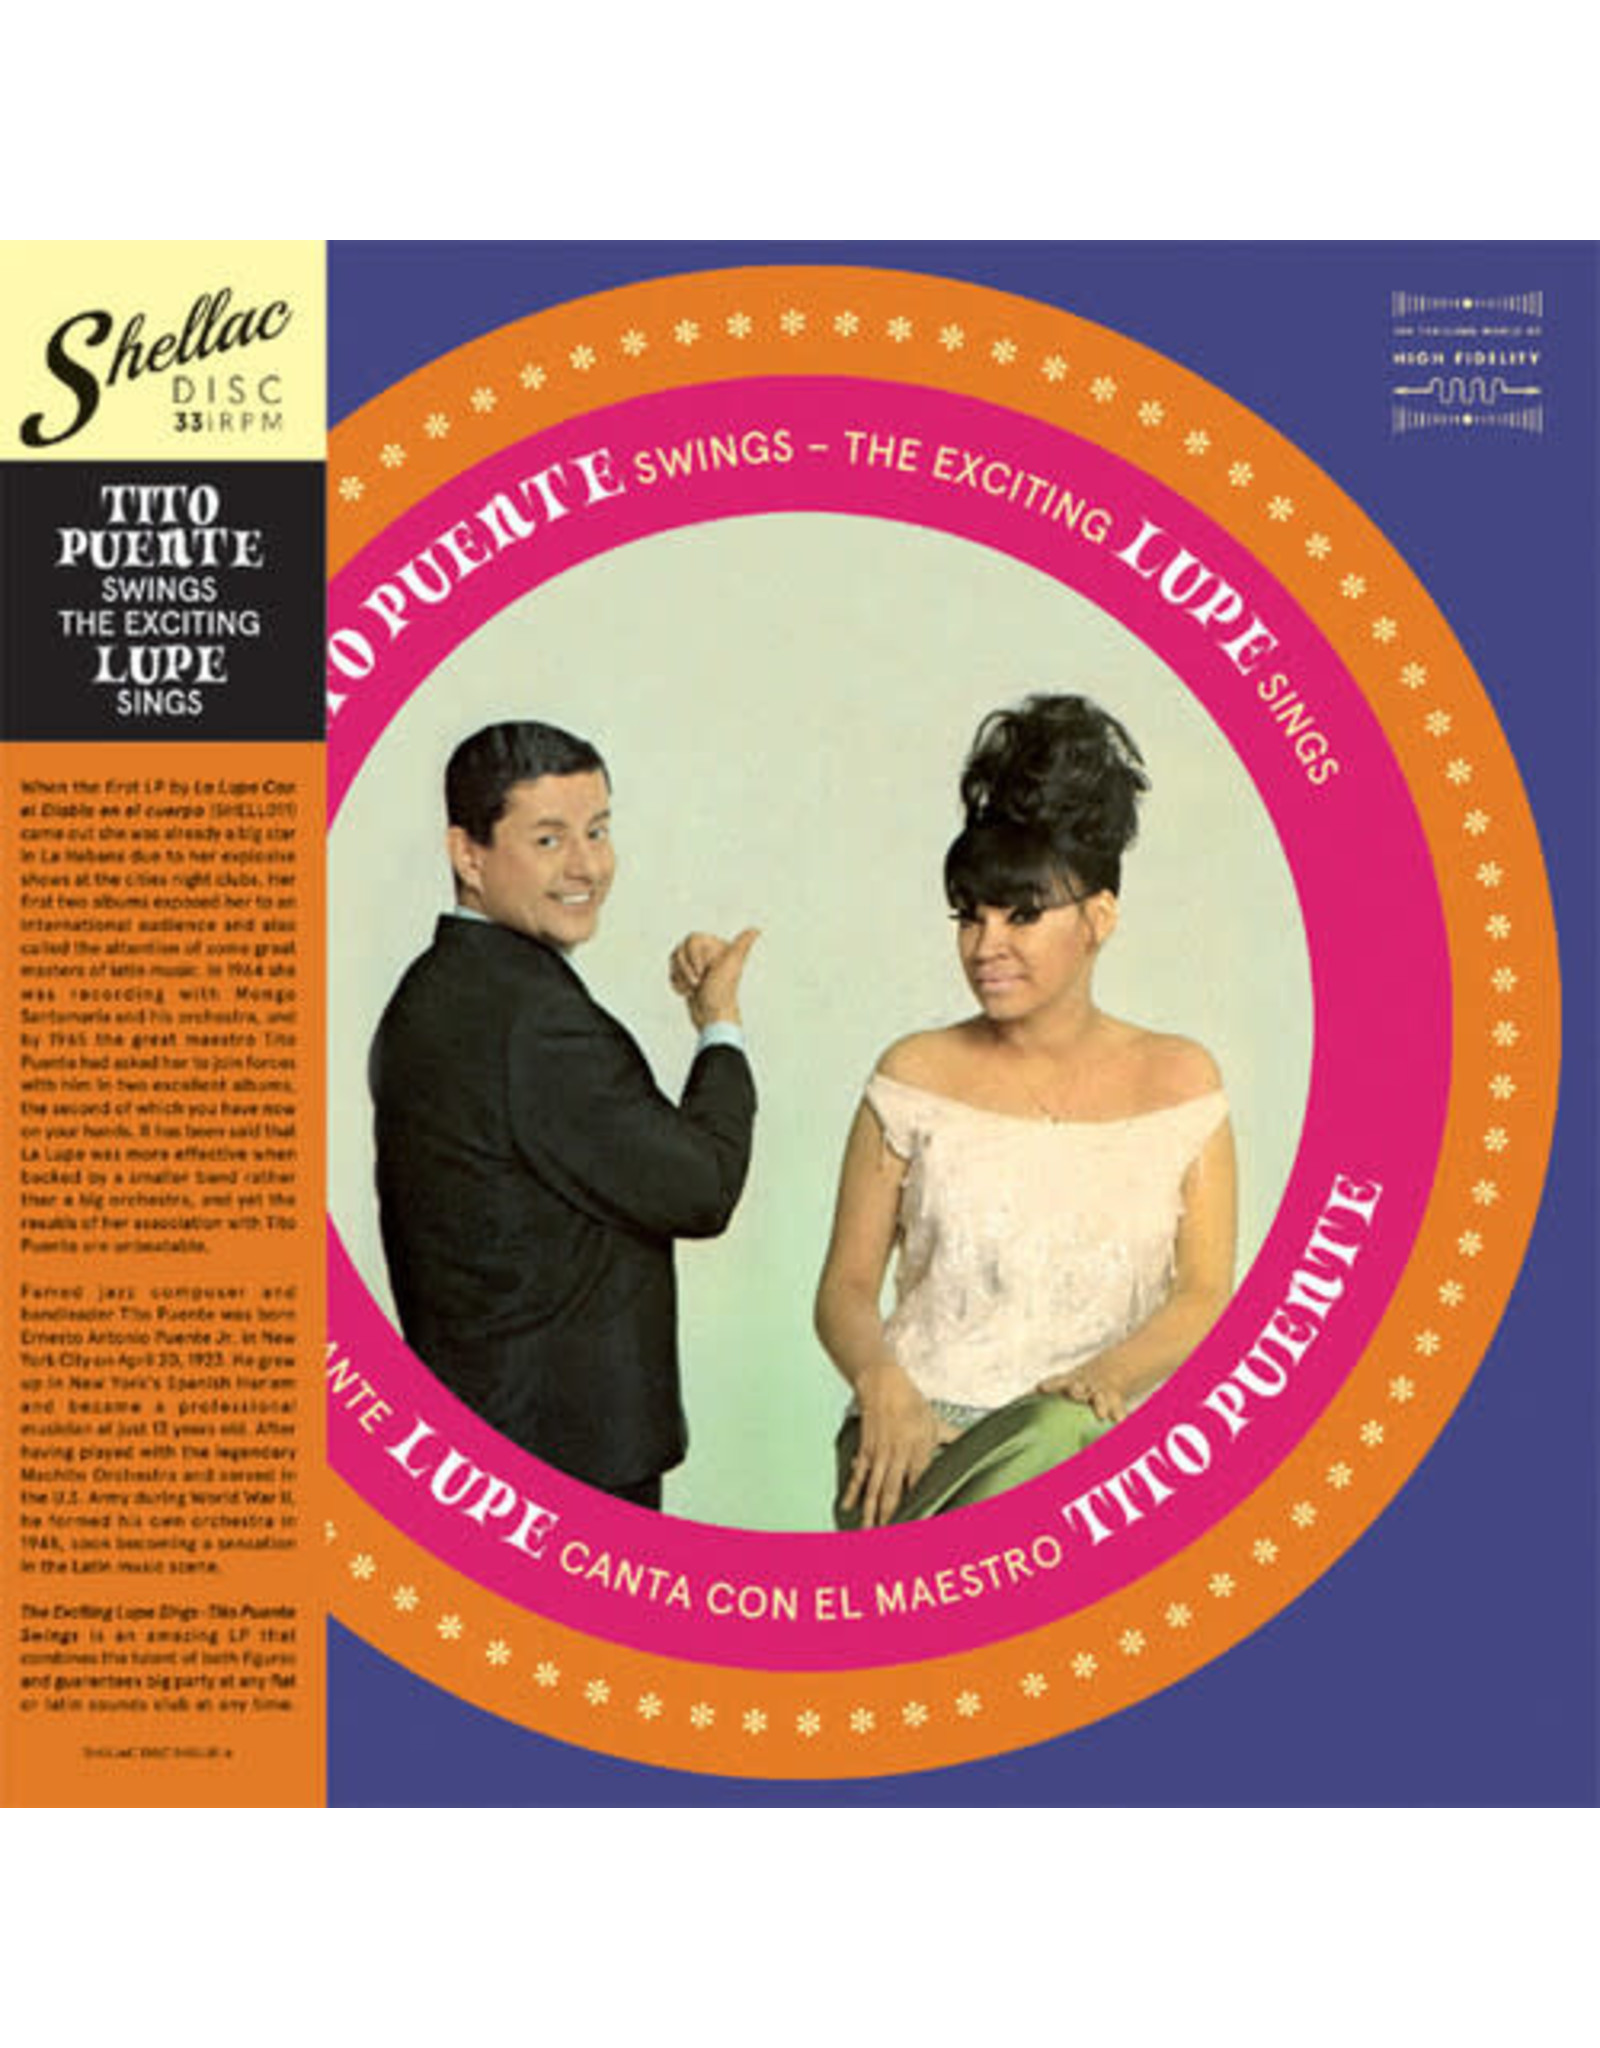 New Vinyl La Lupe / Tito Puente - Tito Puente Swings The Exciting Lupe Sings LP